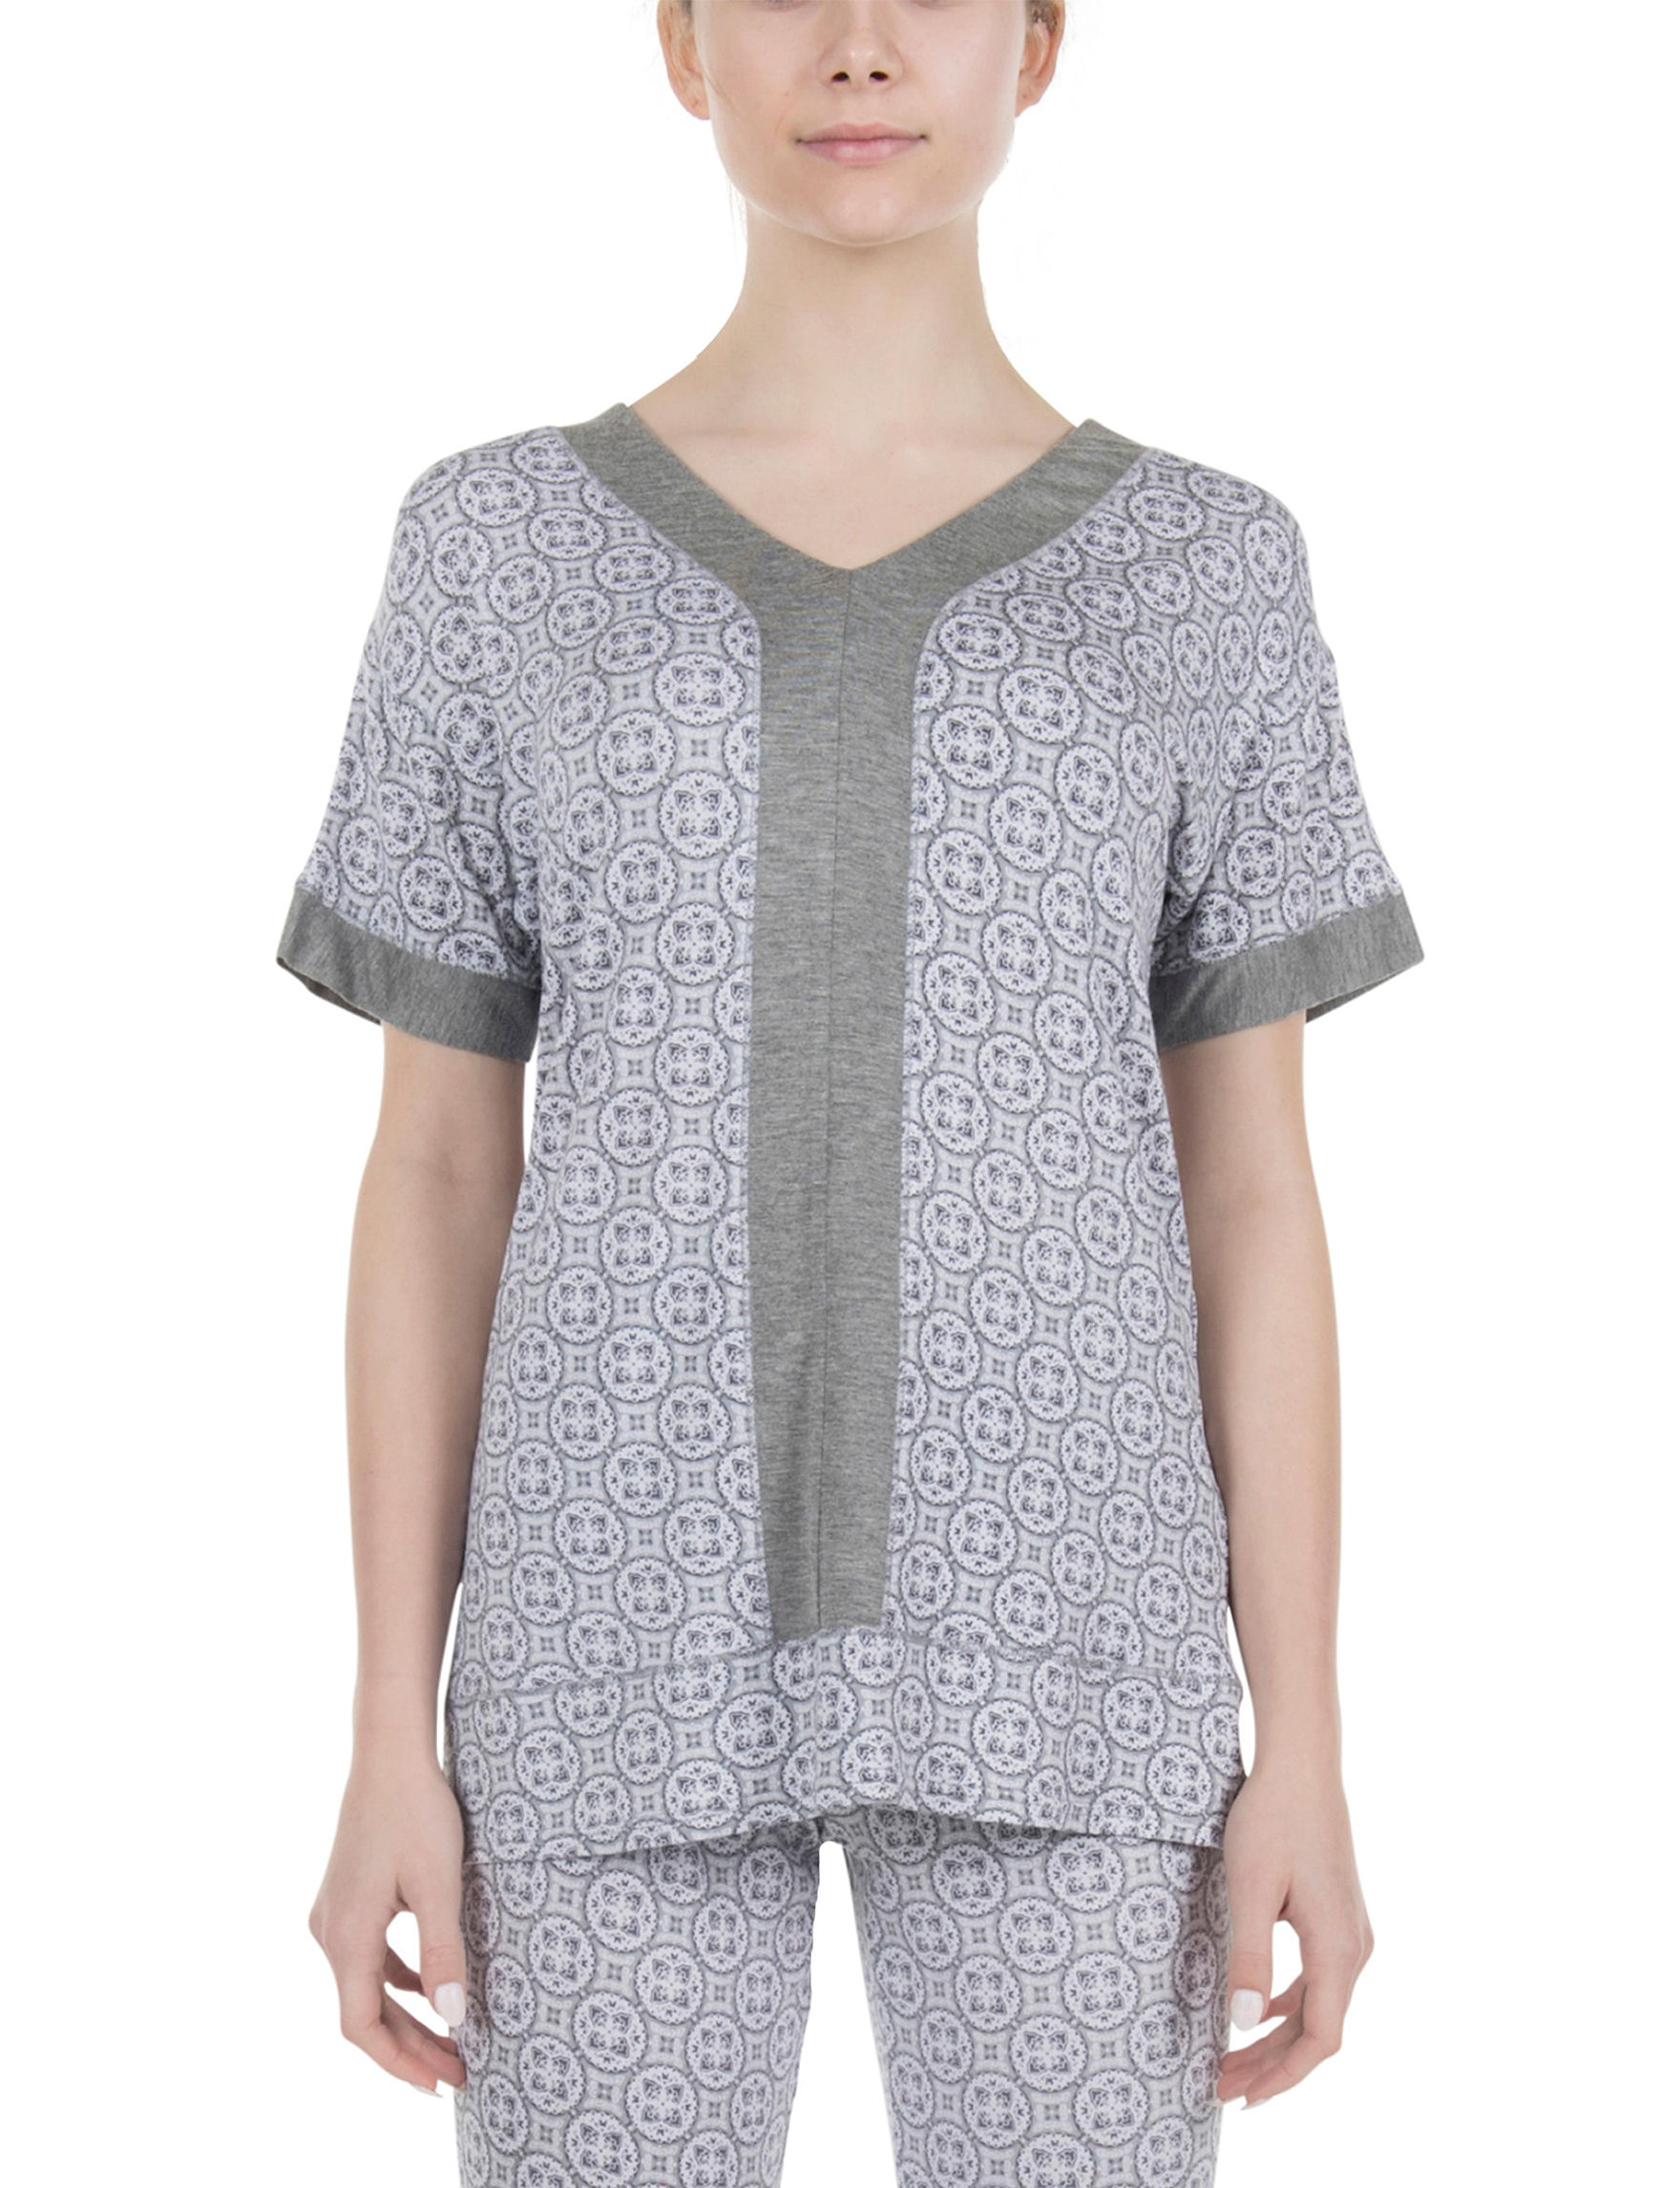 Lissome White / Grey Pajama Tops